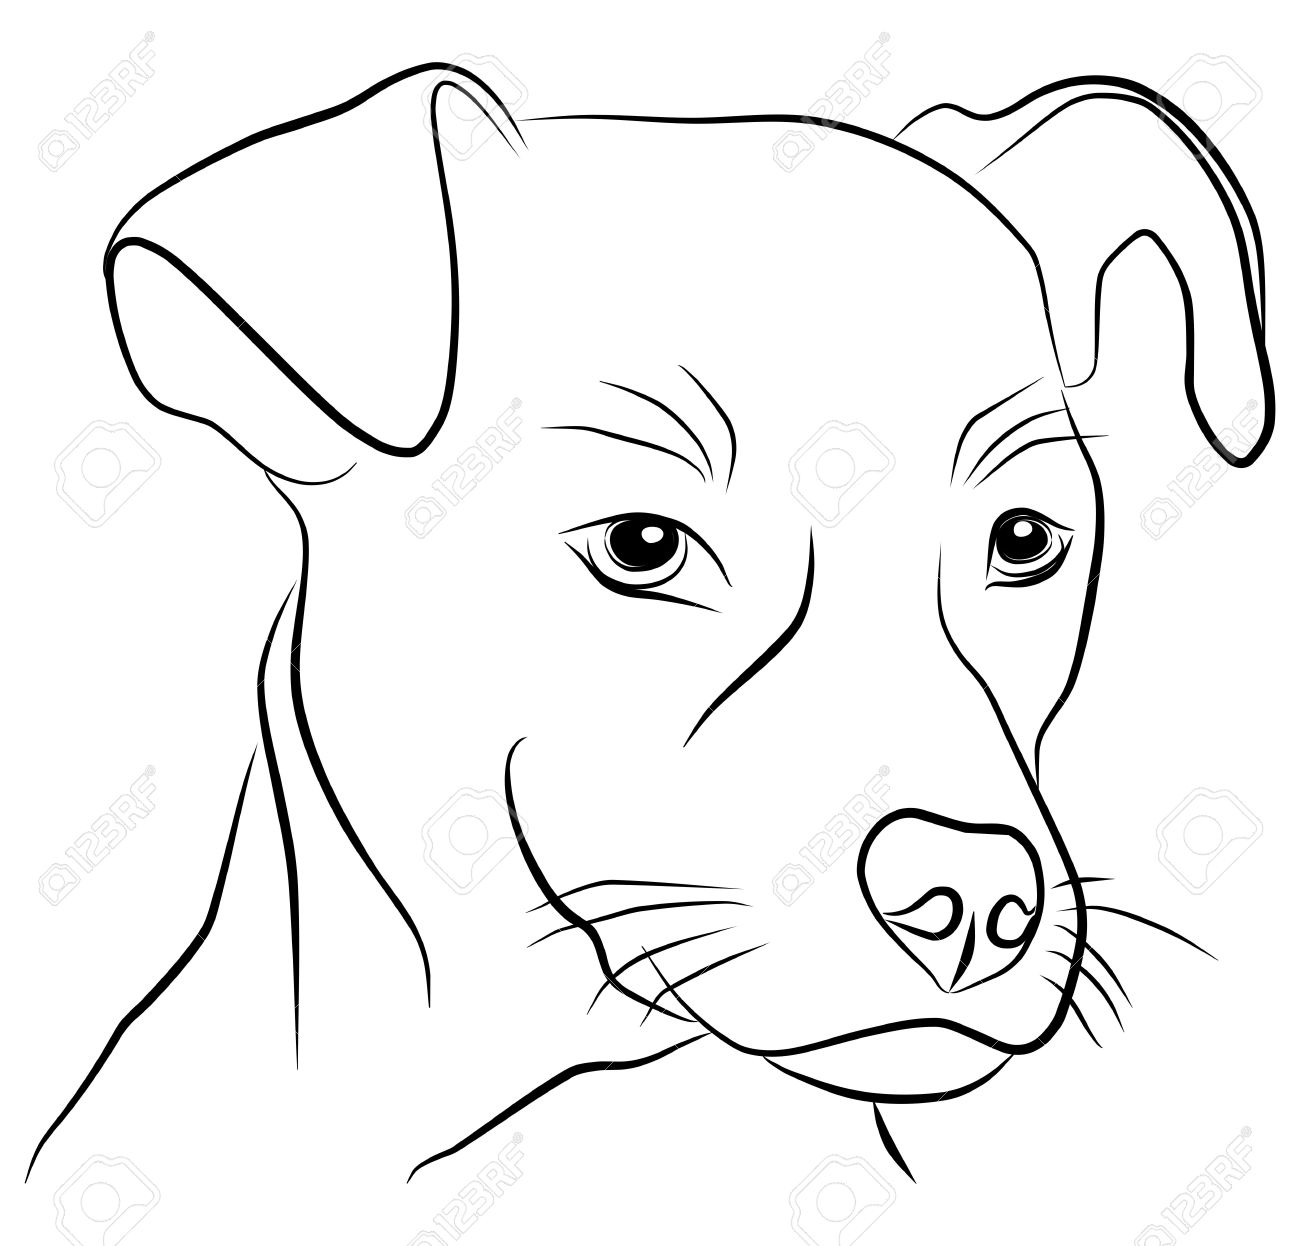 Dog Head Isolated Freehand Vector Illustration Royalty Free